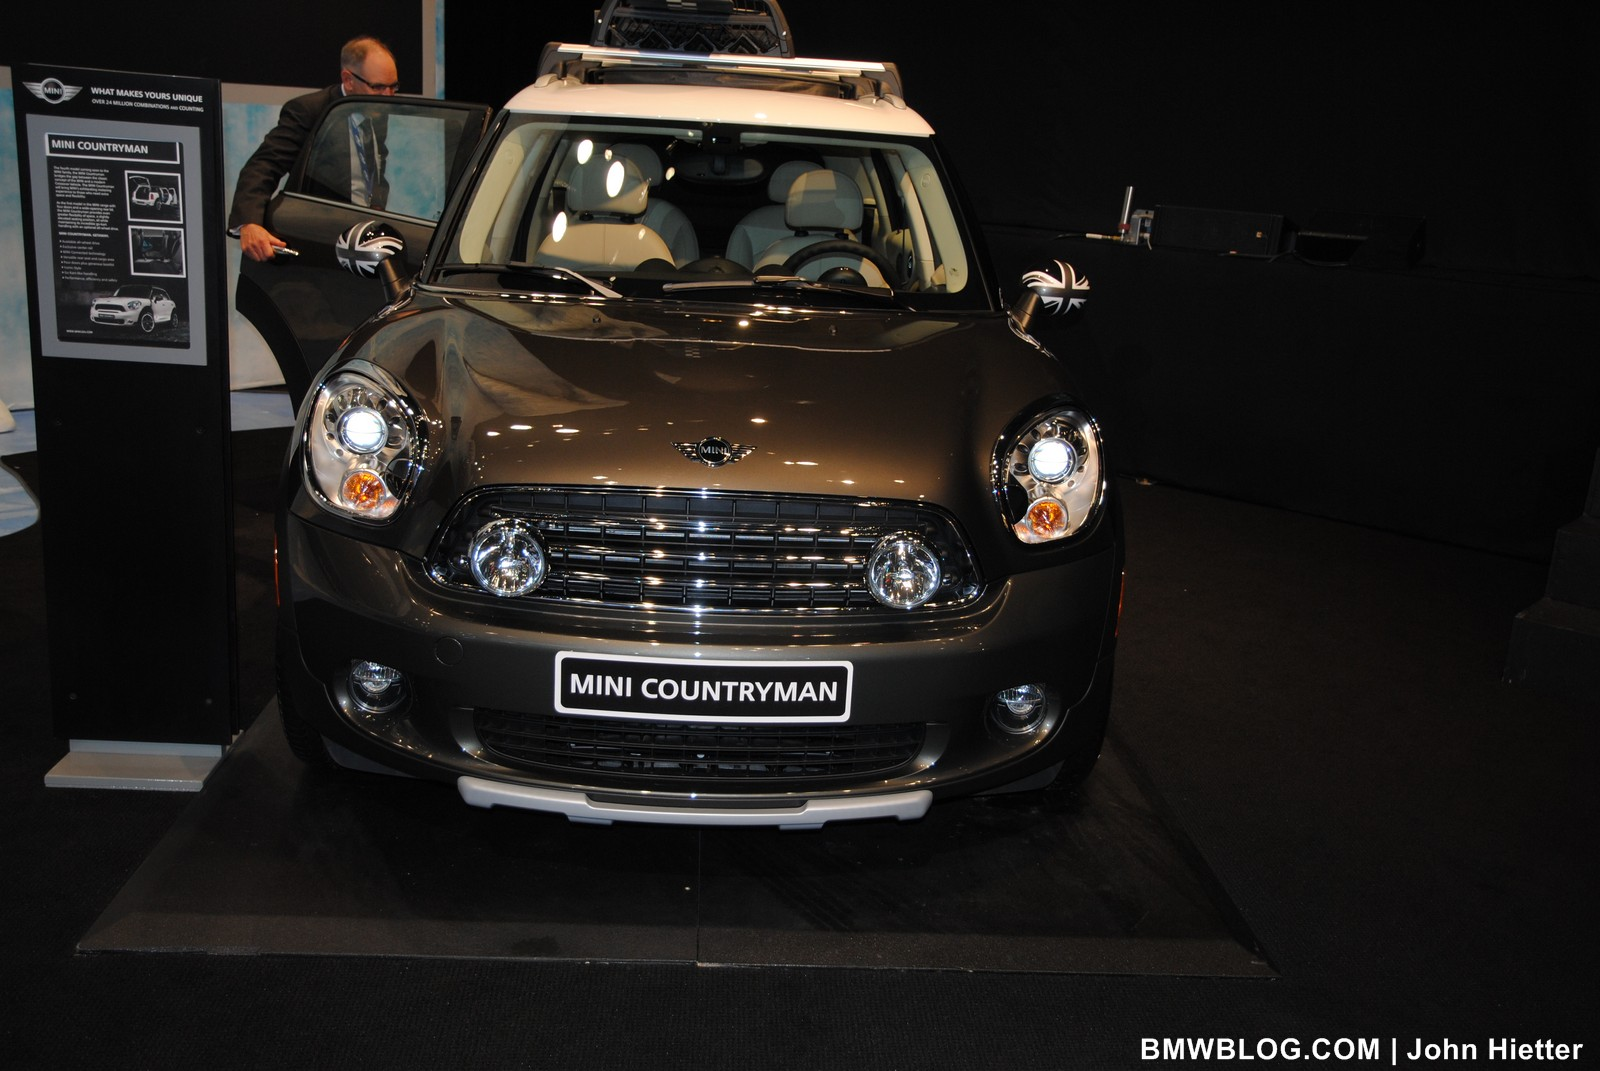 MINI Countryman NYIAS 2011 291